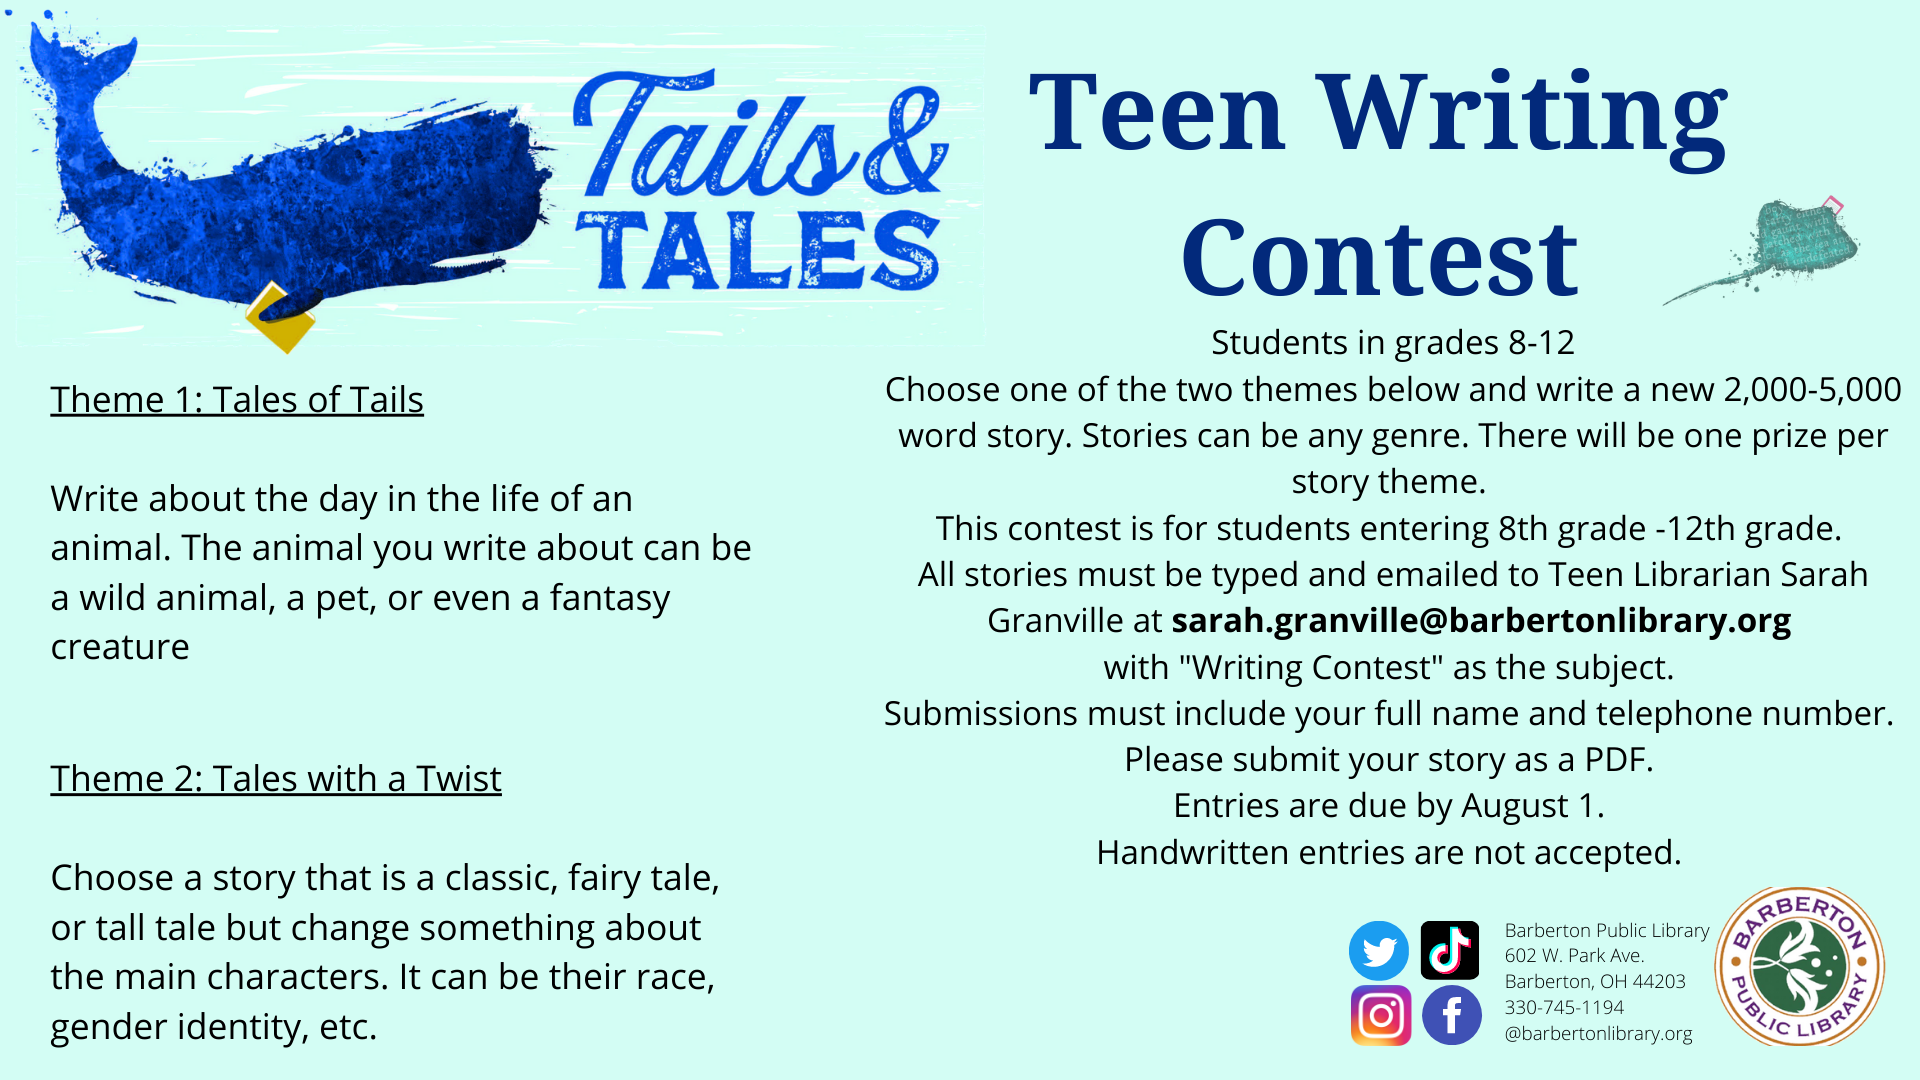 Teen Tails & Tales Writing Contest